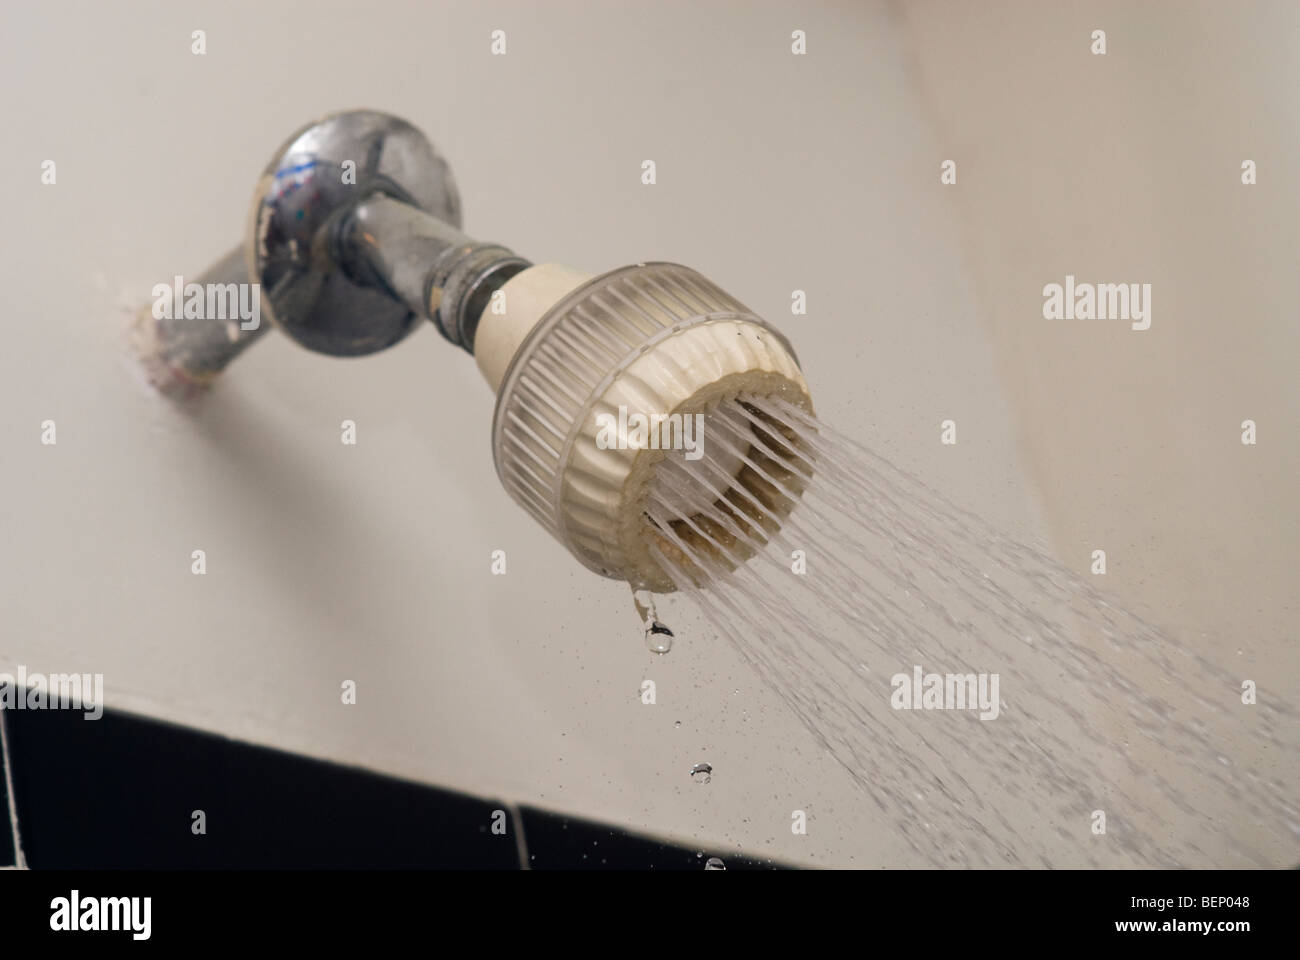 A plastic shower head Stock Photo, Royalty Free Image: 26298616 ...